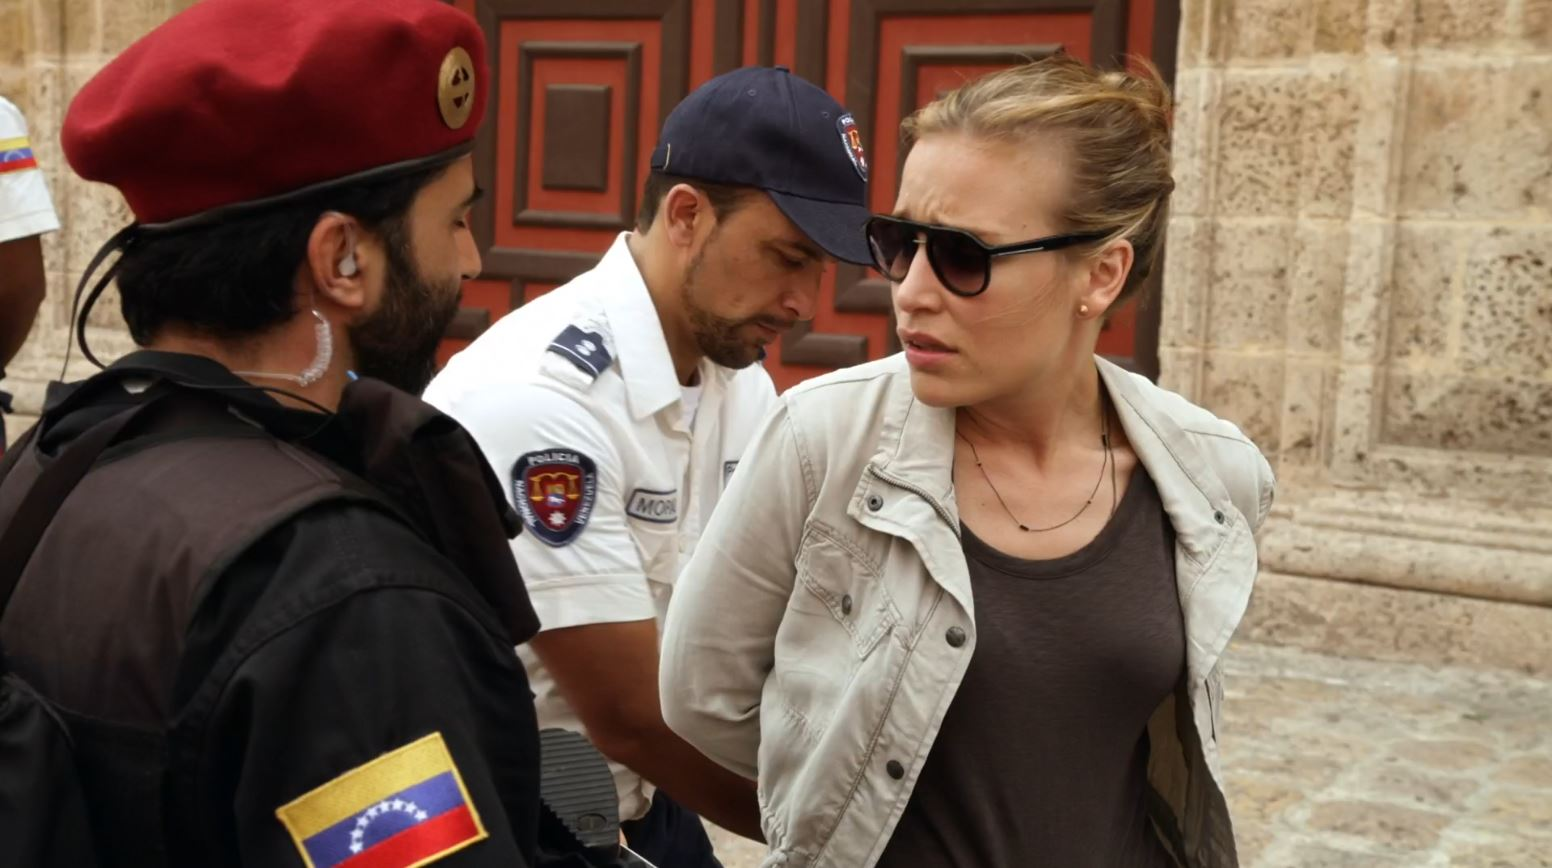 Covert Affairs S5Ep2 False Skorpion Review - Piper Perabo as Annie Walker trying to explain she is getting a boob job